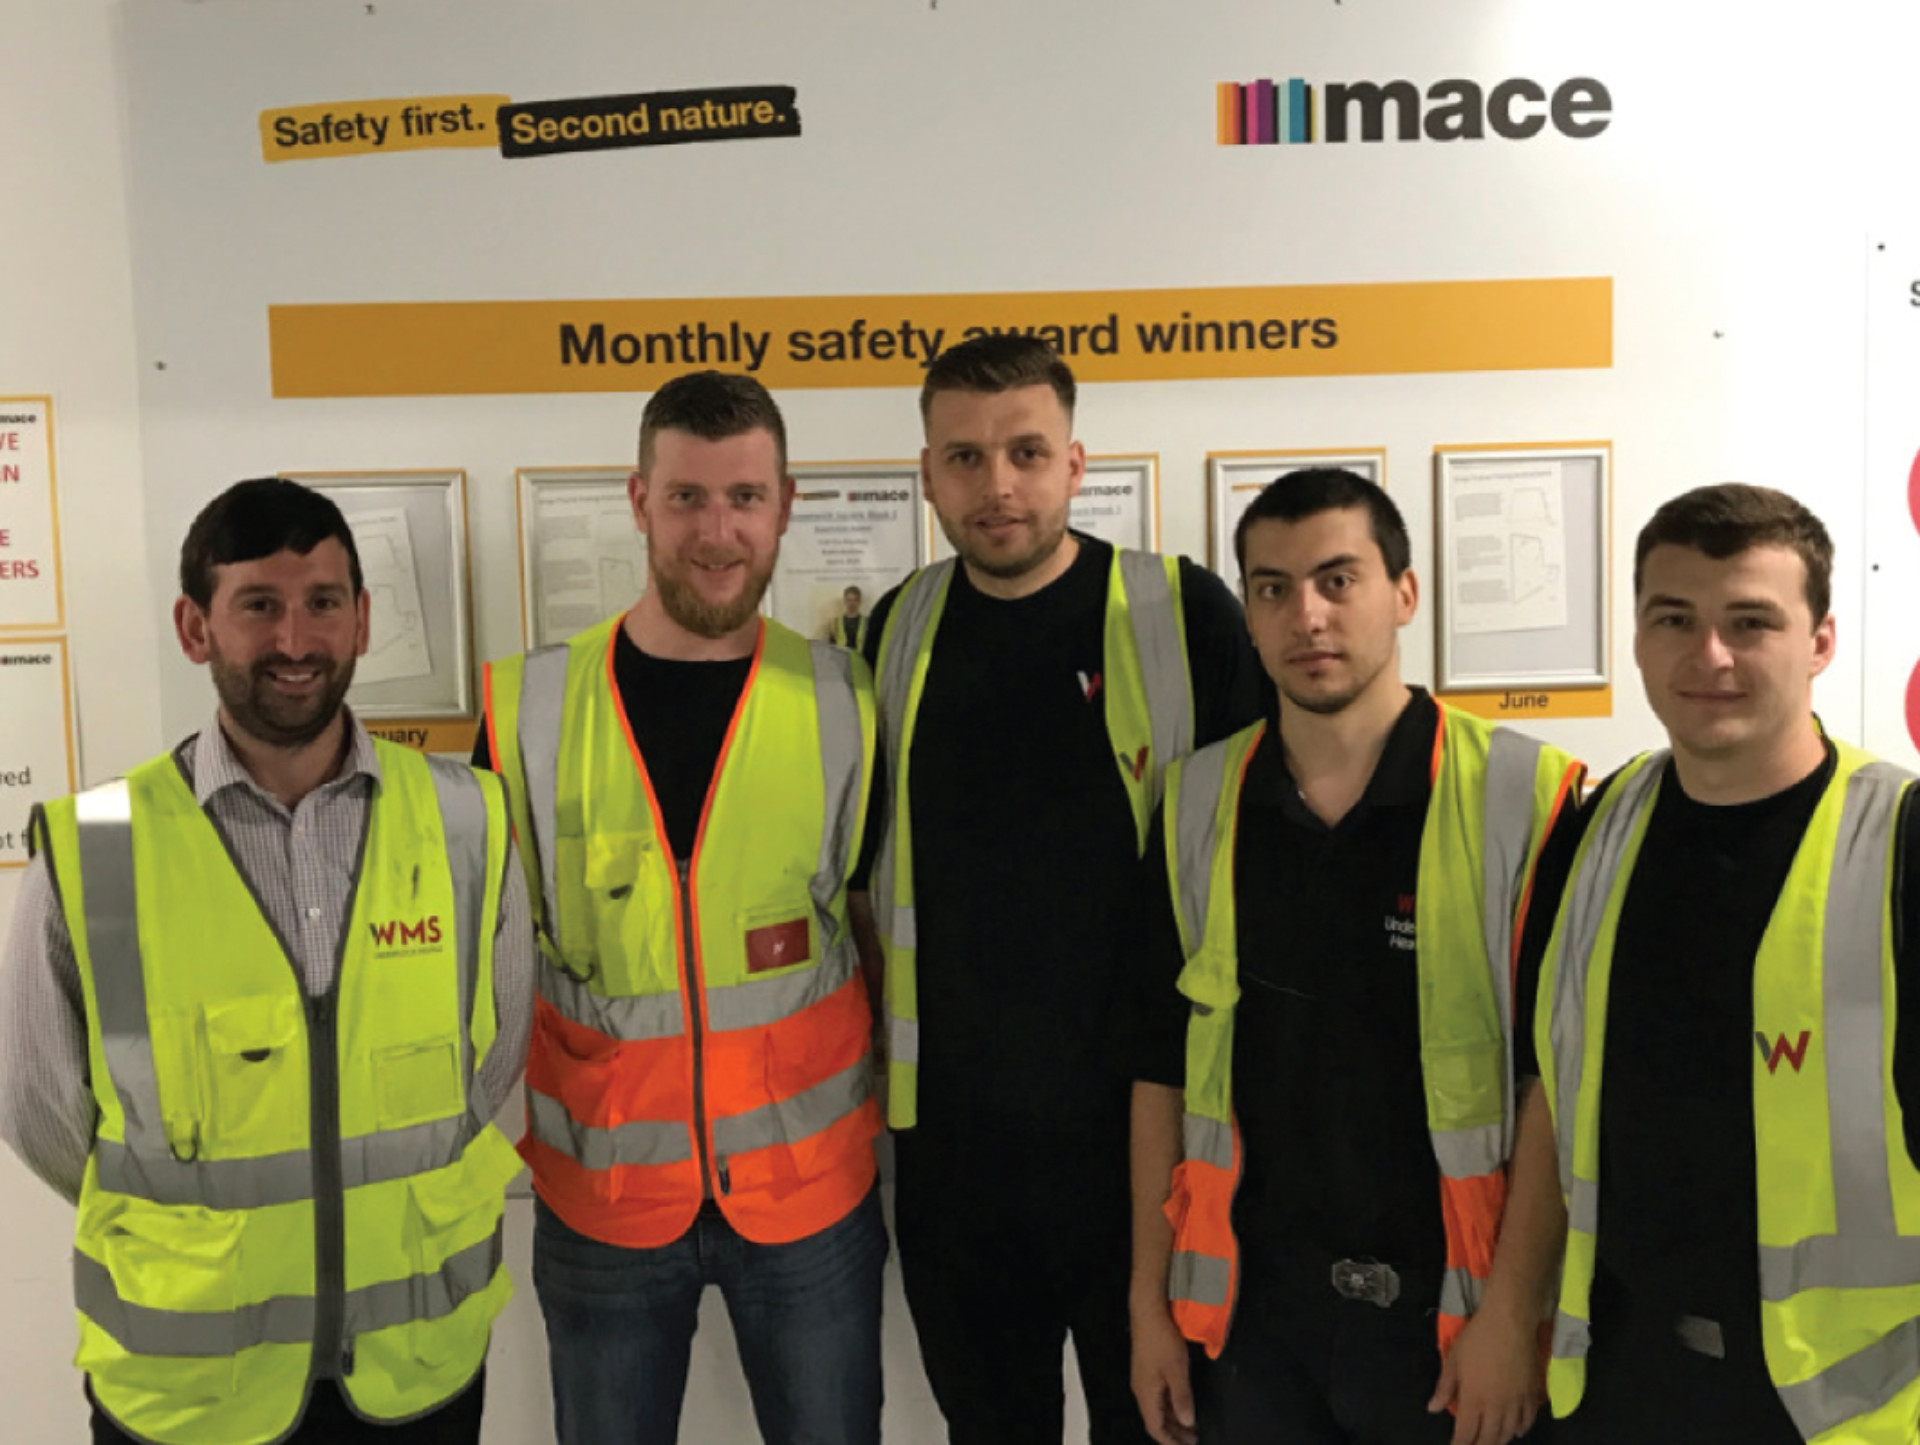 'Service Excellence' & 'Safety On Site' Award